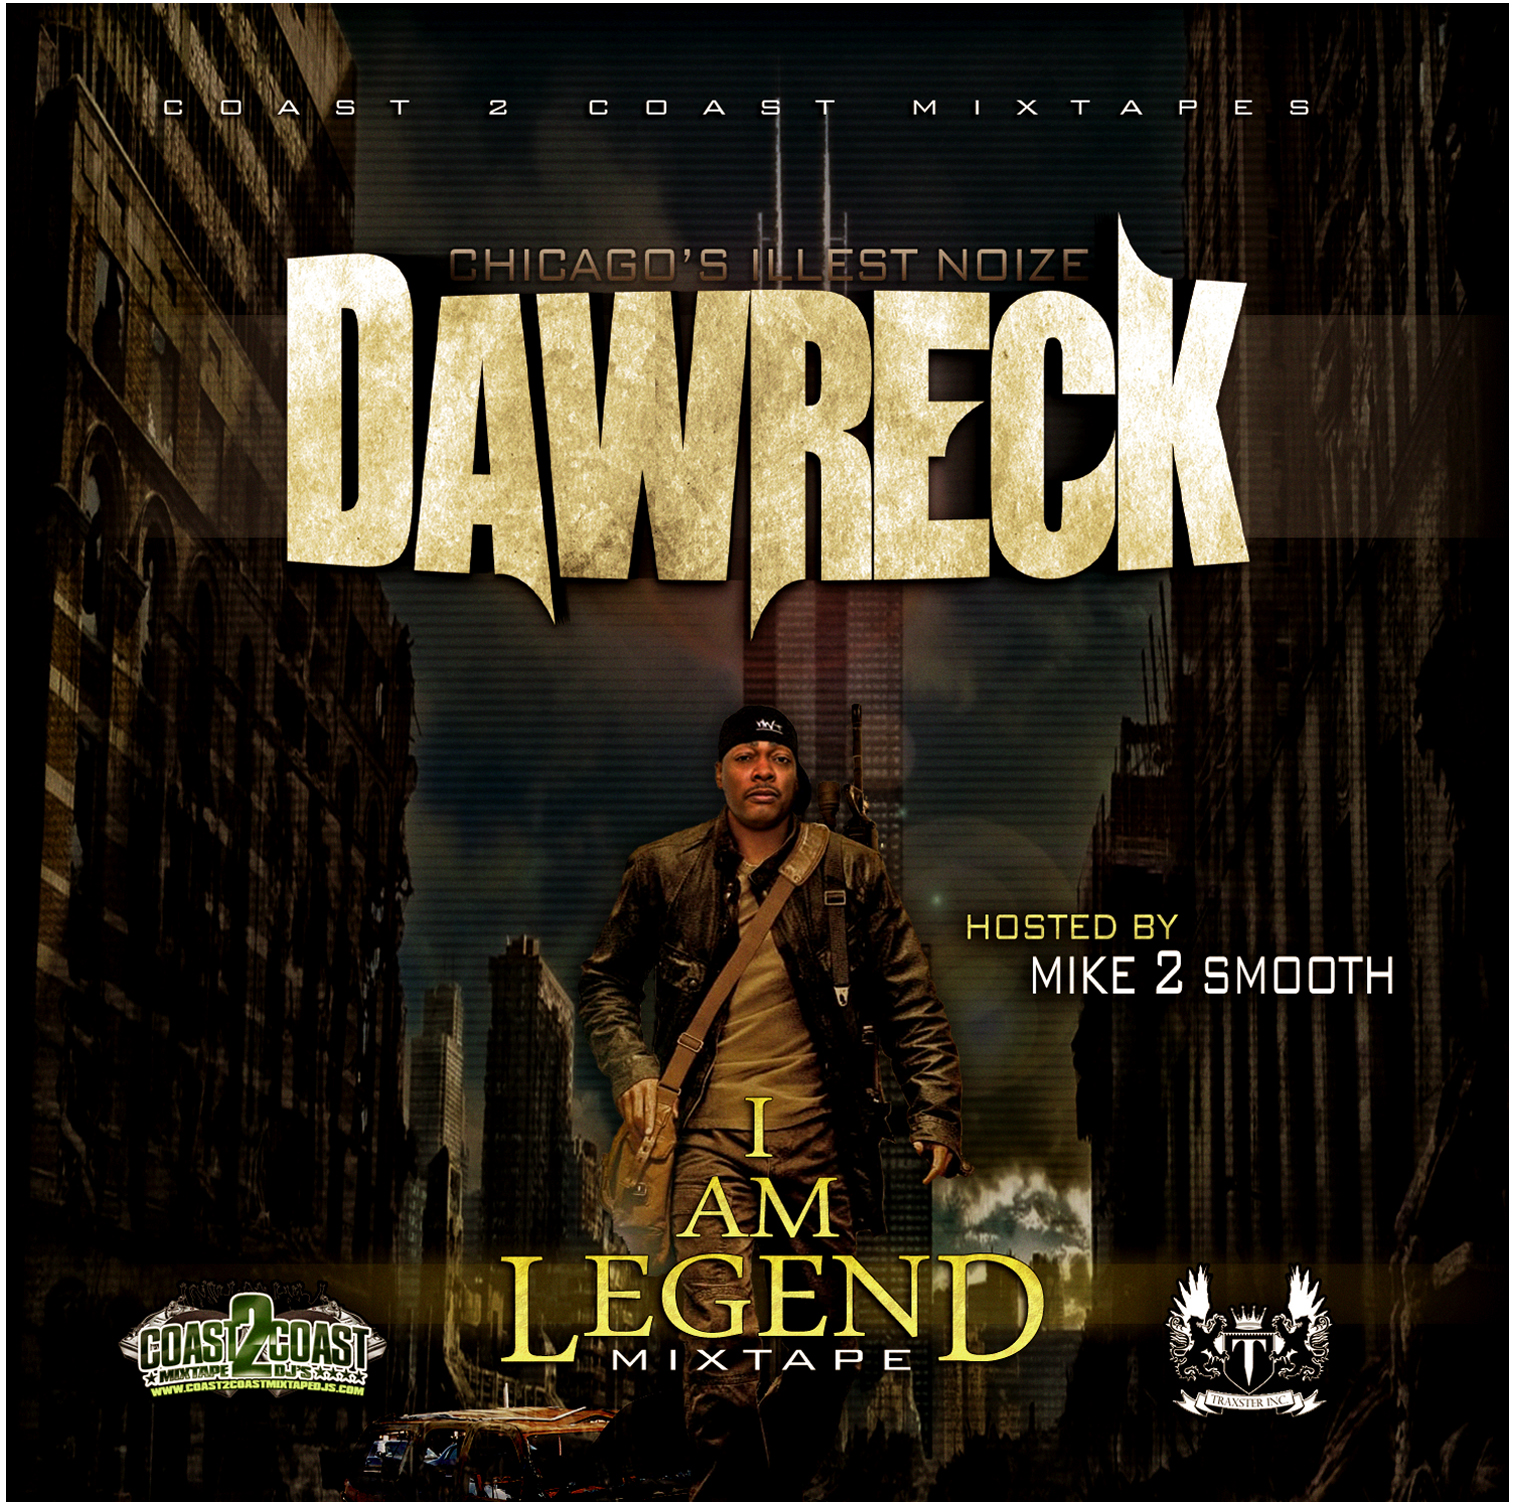 I Am Legend 2 Cover Images & Pictures - Becuo